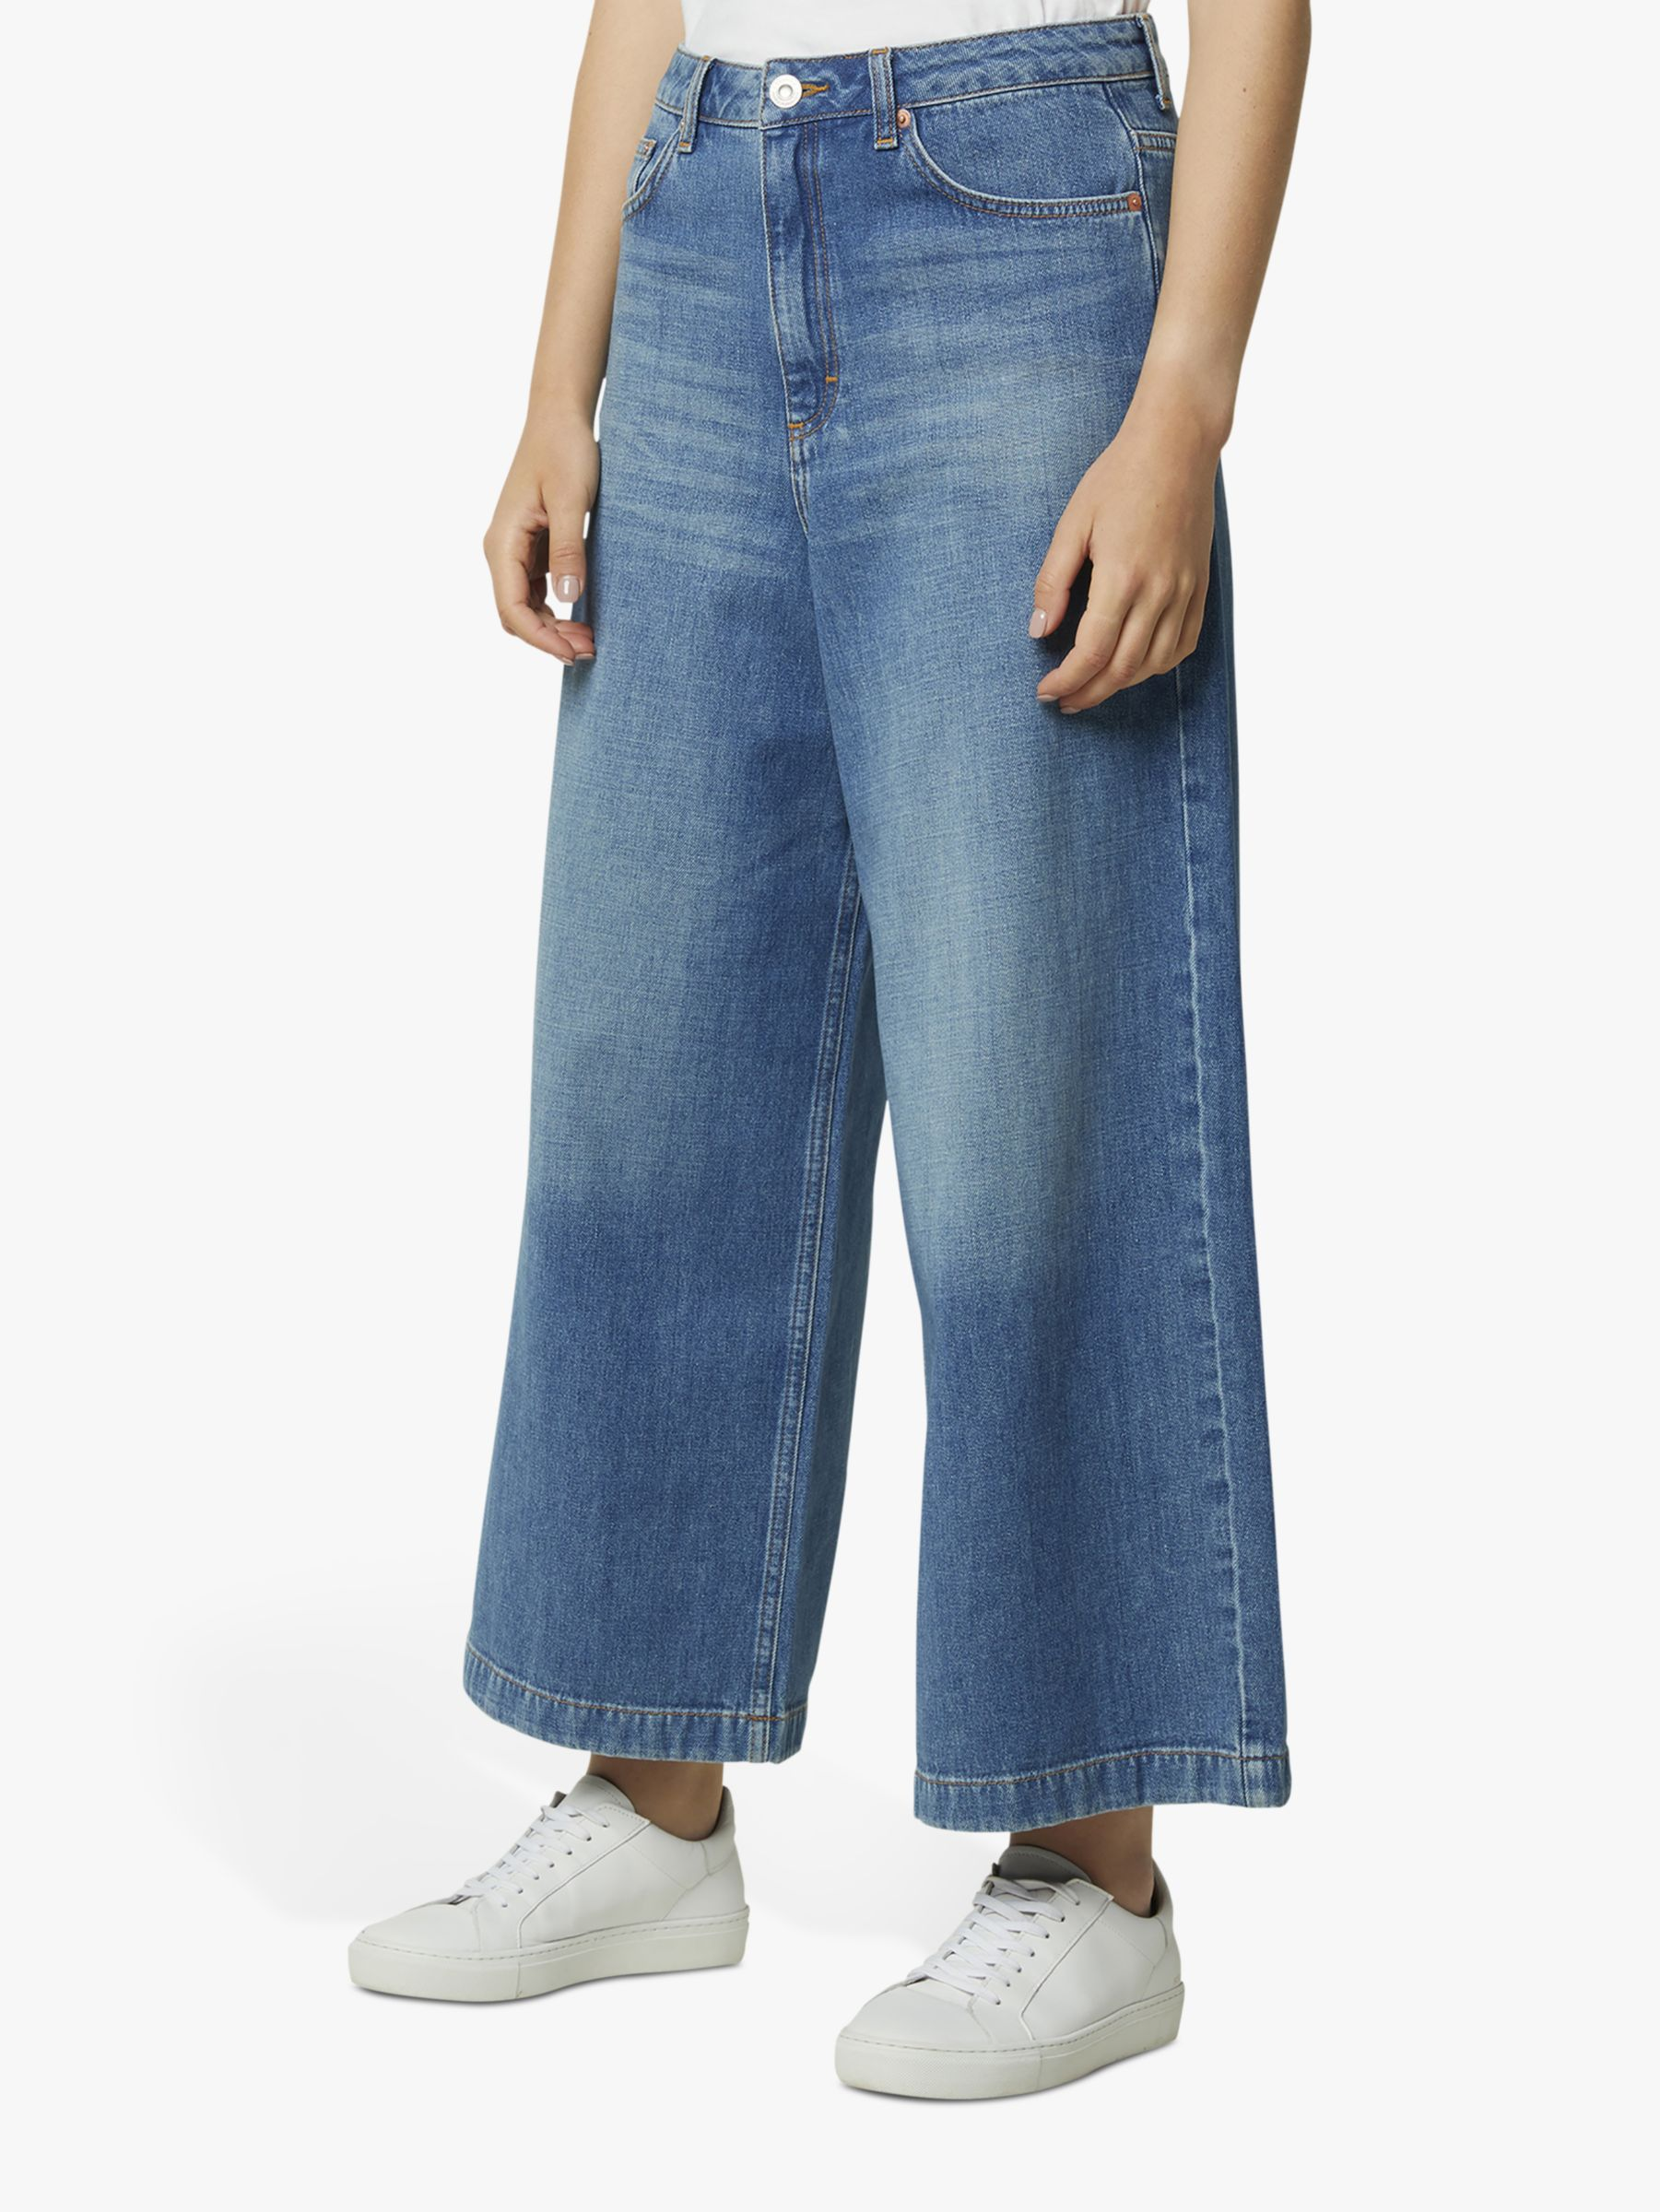 French Connection Womens Reem Jeans